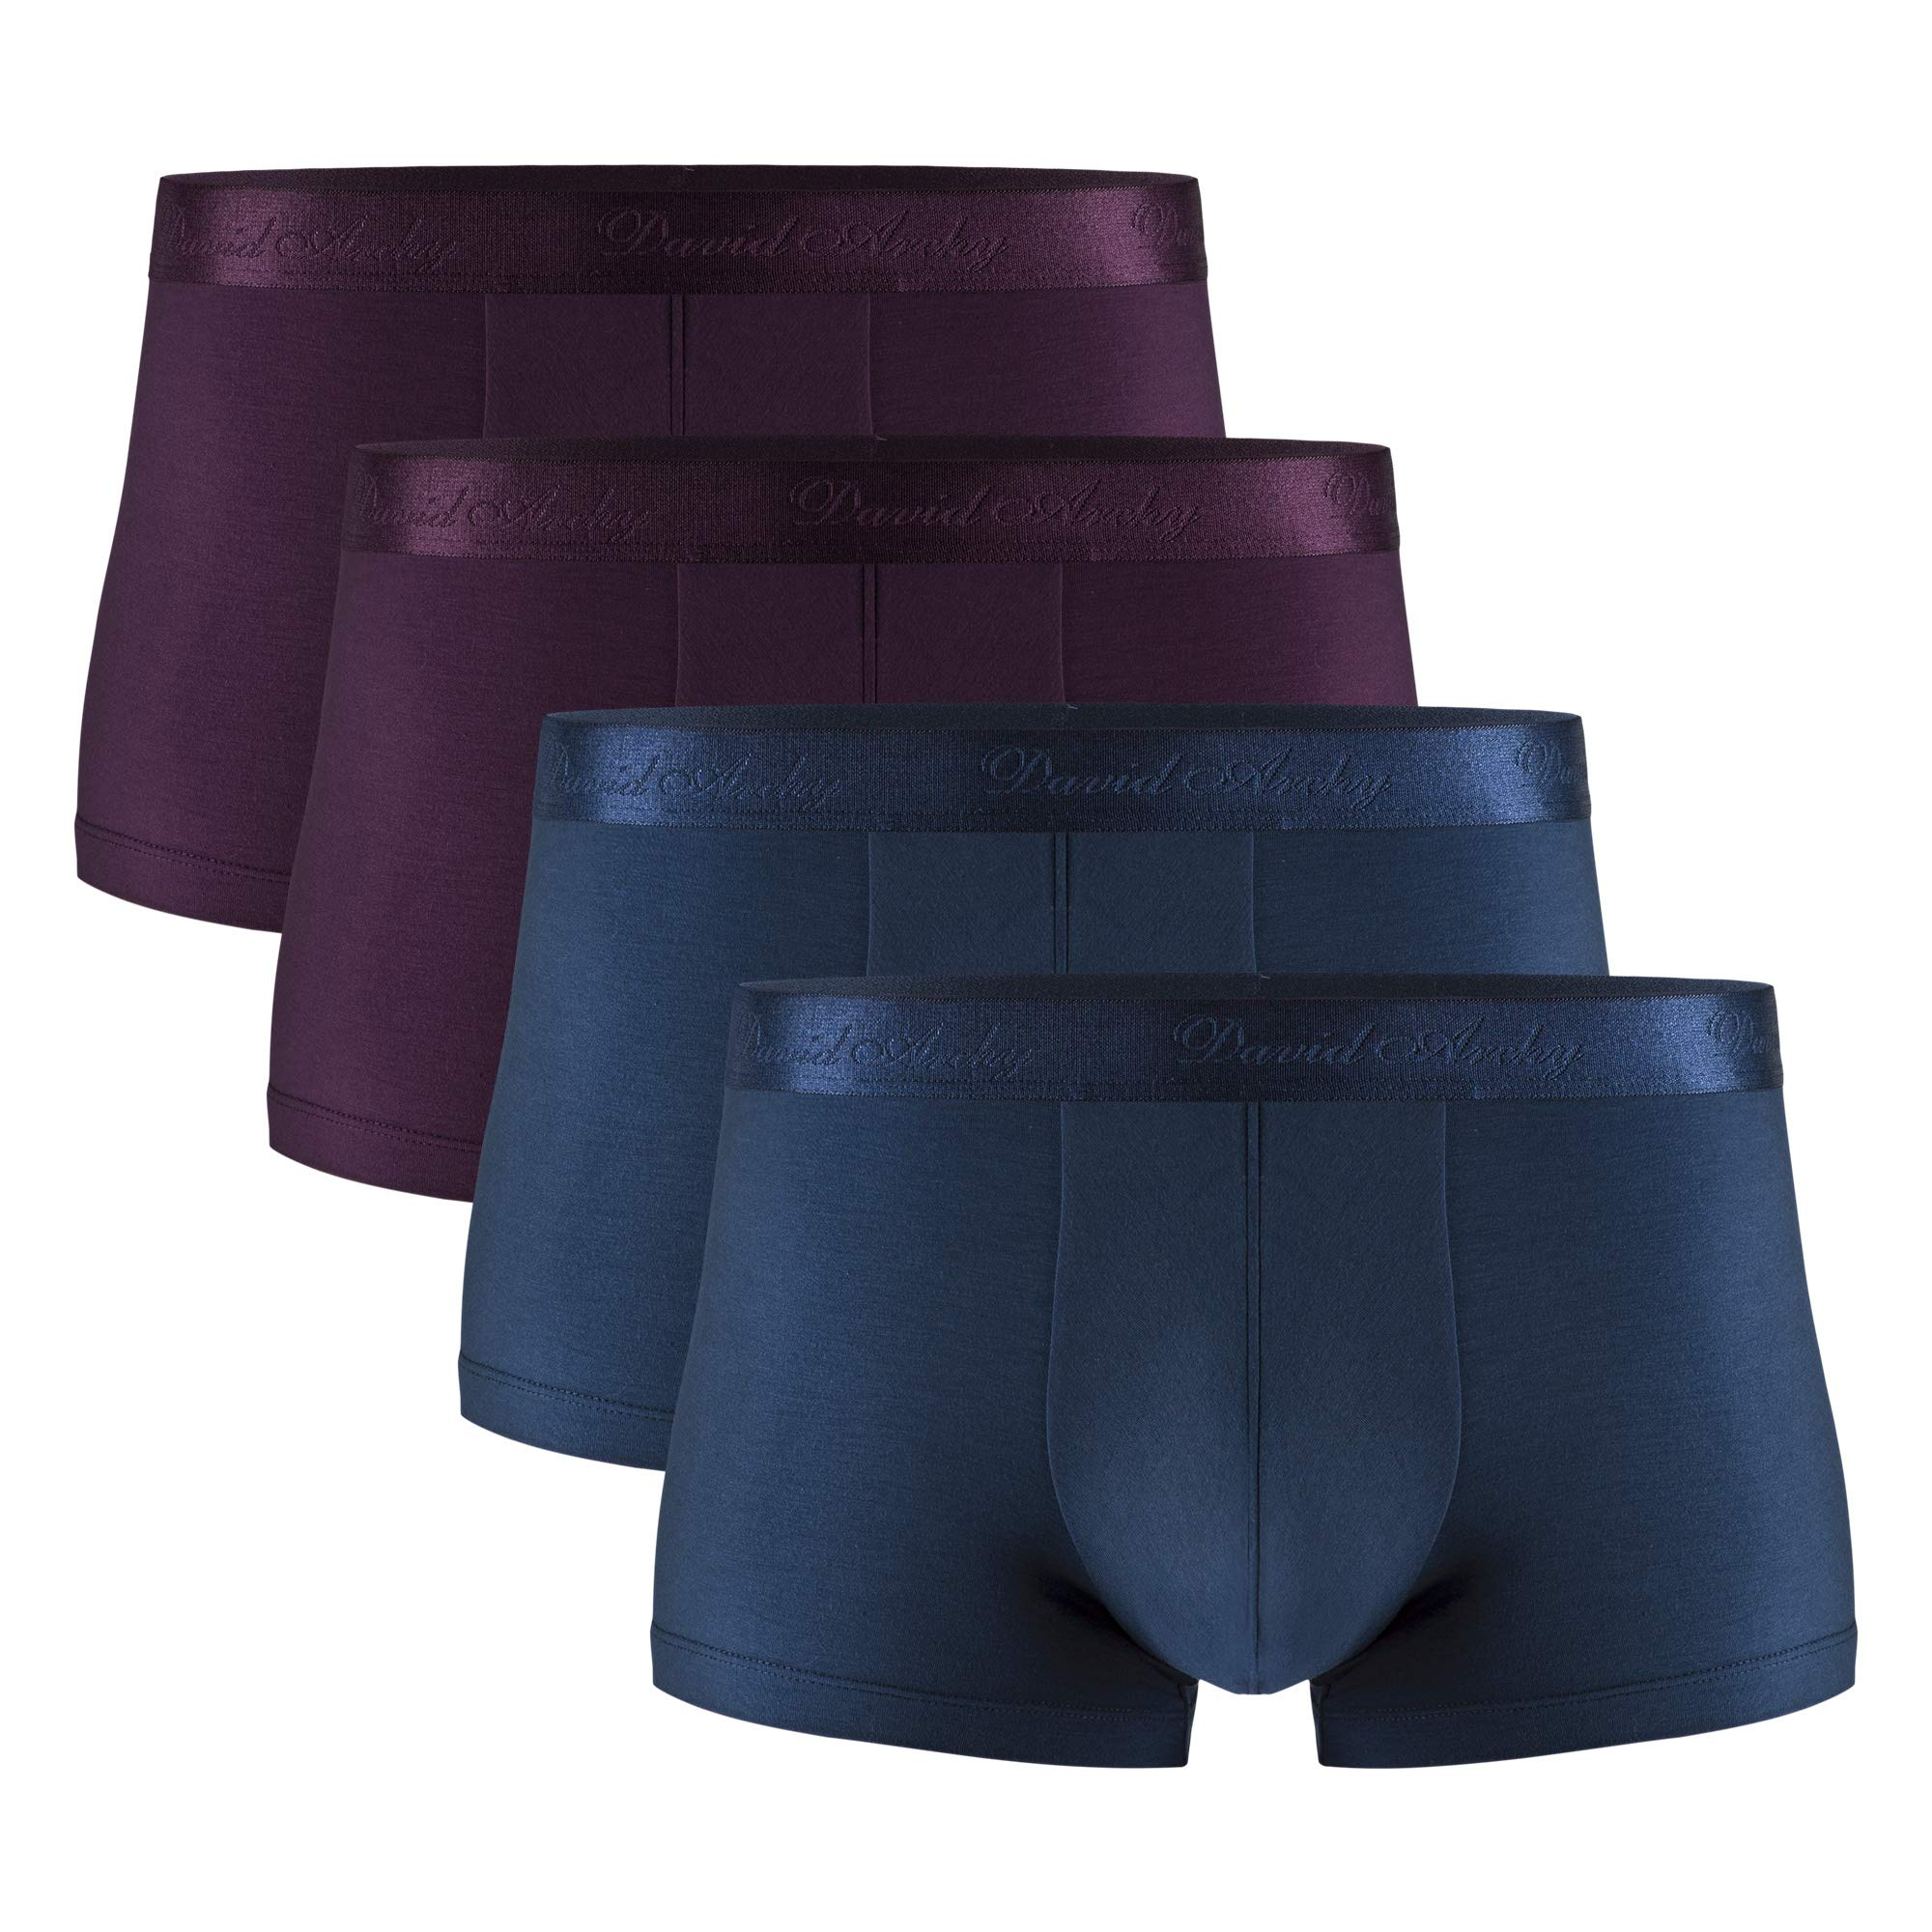 David Archy Men's 4 Pack Underwear Micro Modal Ultra Soft Trunks (S, Wine/Navy Blue) by David Archy